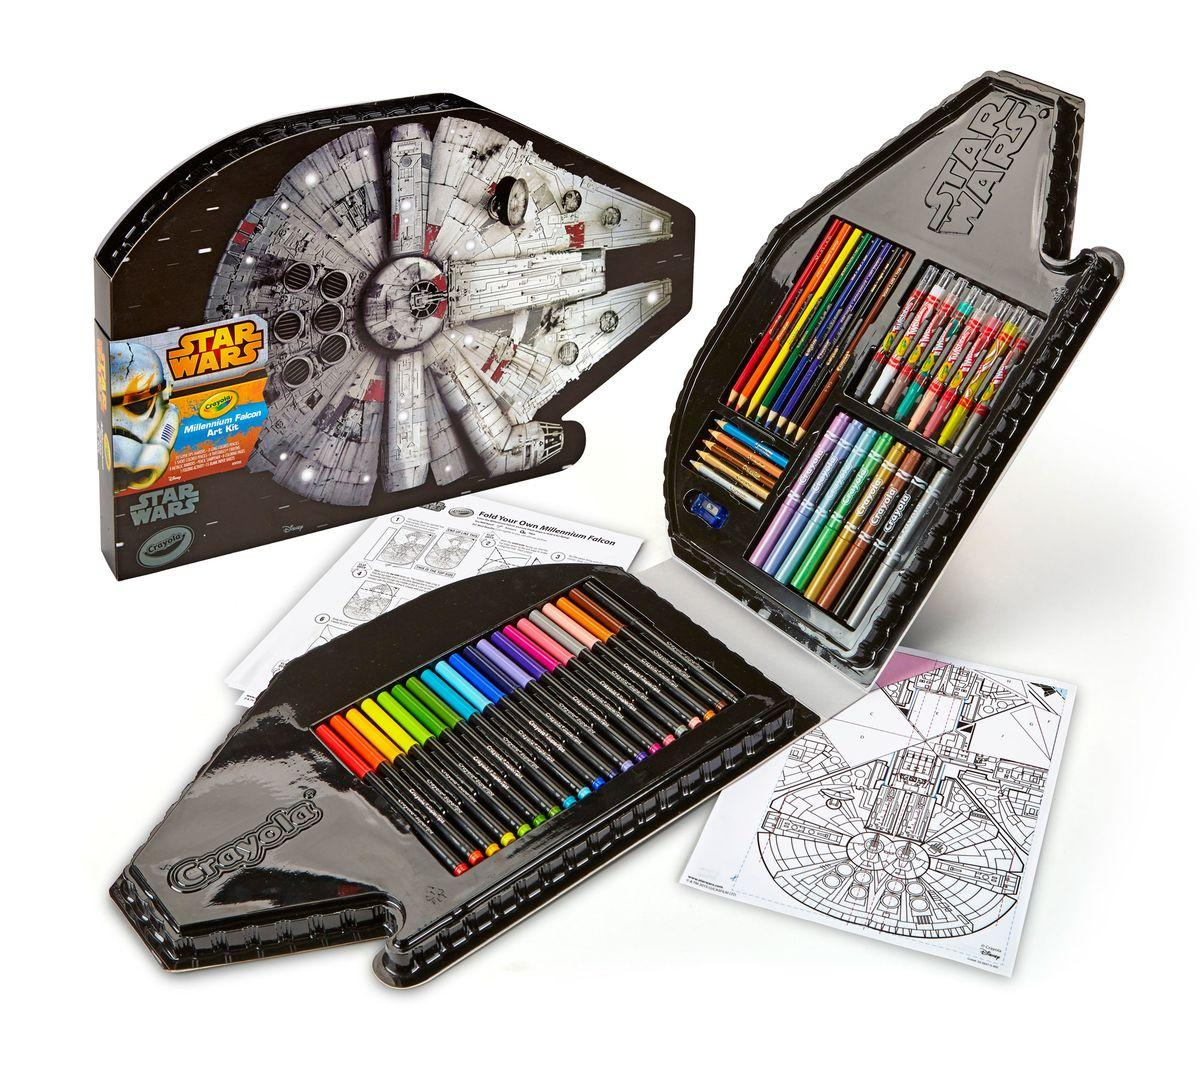 Crayola 04-6847 Millennium Falcon Art Case Toy